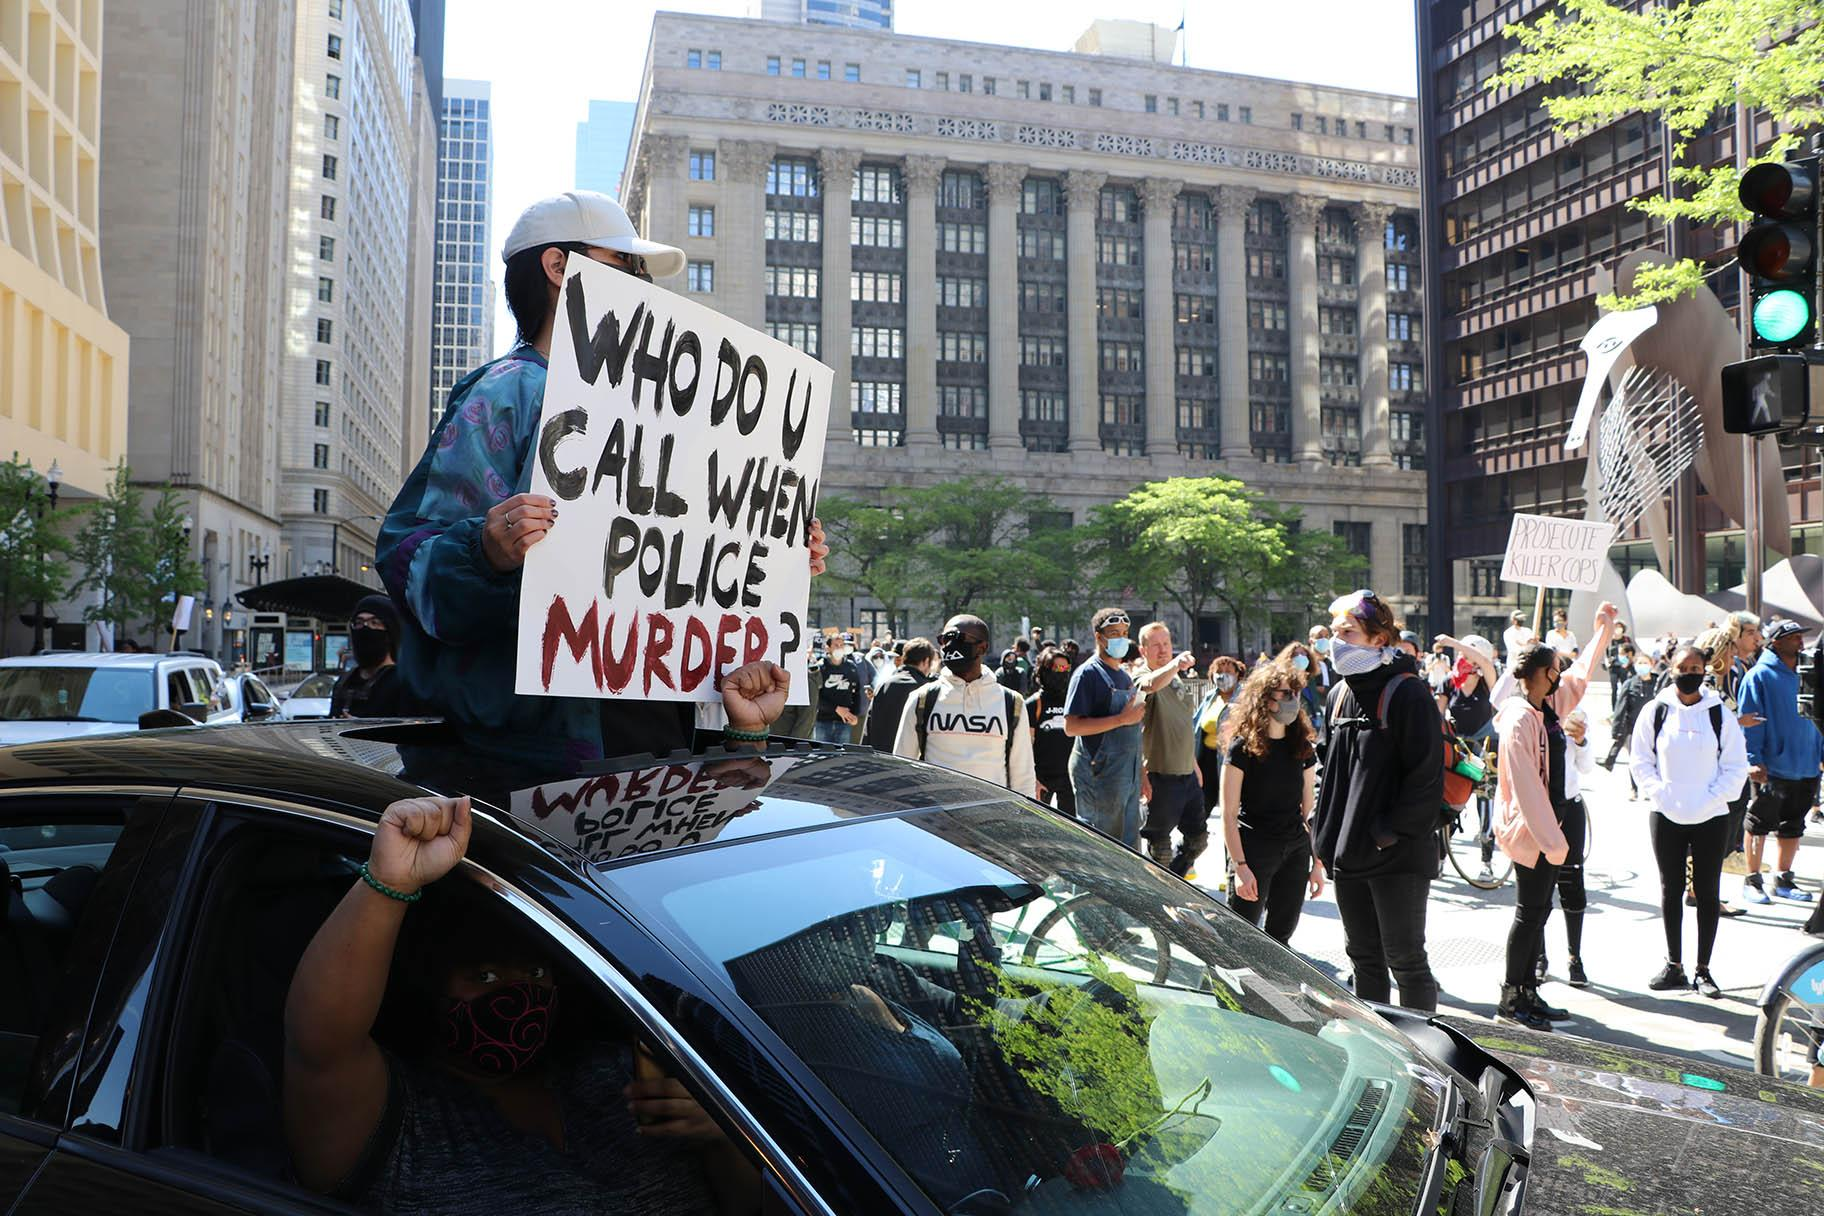 Several motorists show support by honking their horns and holding signs while circling Daley Plaza. (Evan Garcia / WTTW News)